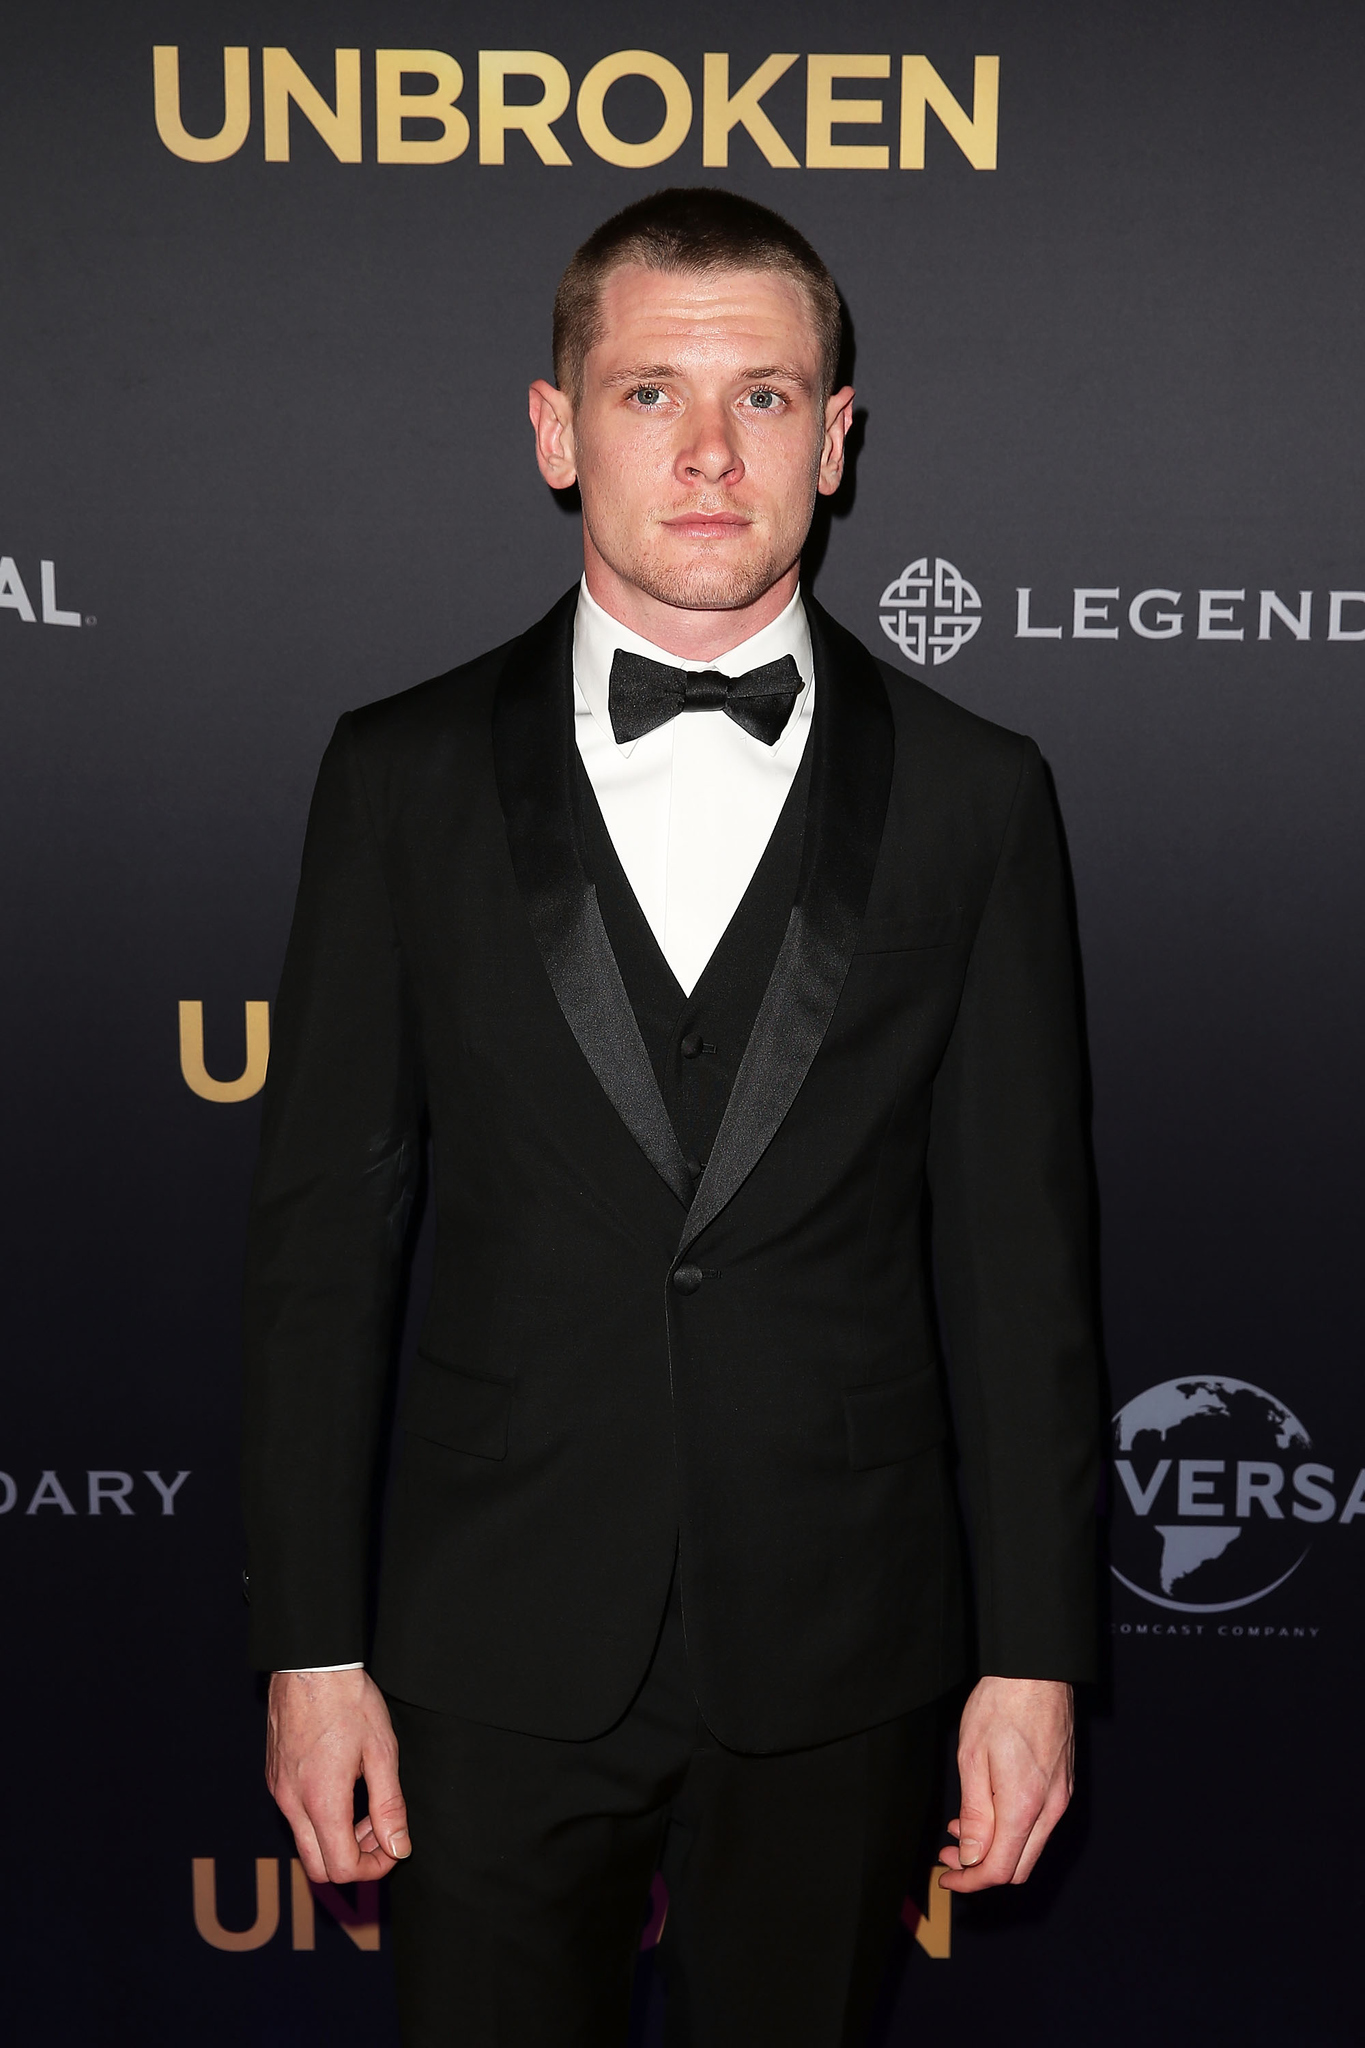 Jack O'Connell at event of Unbroken (2014) photo #540428